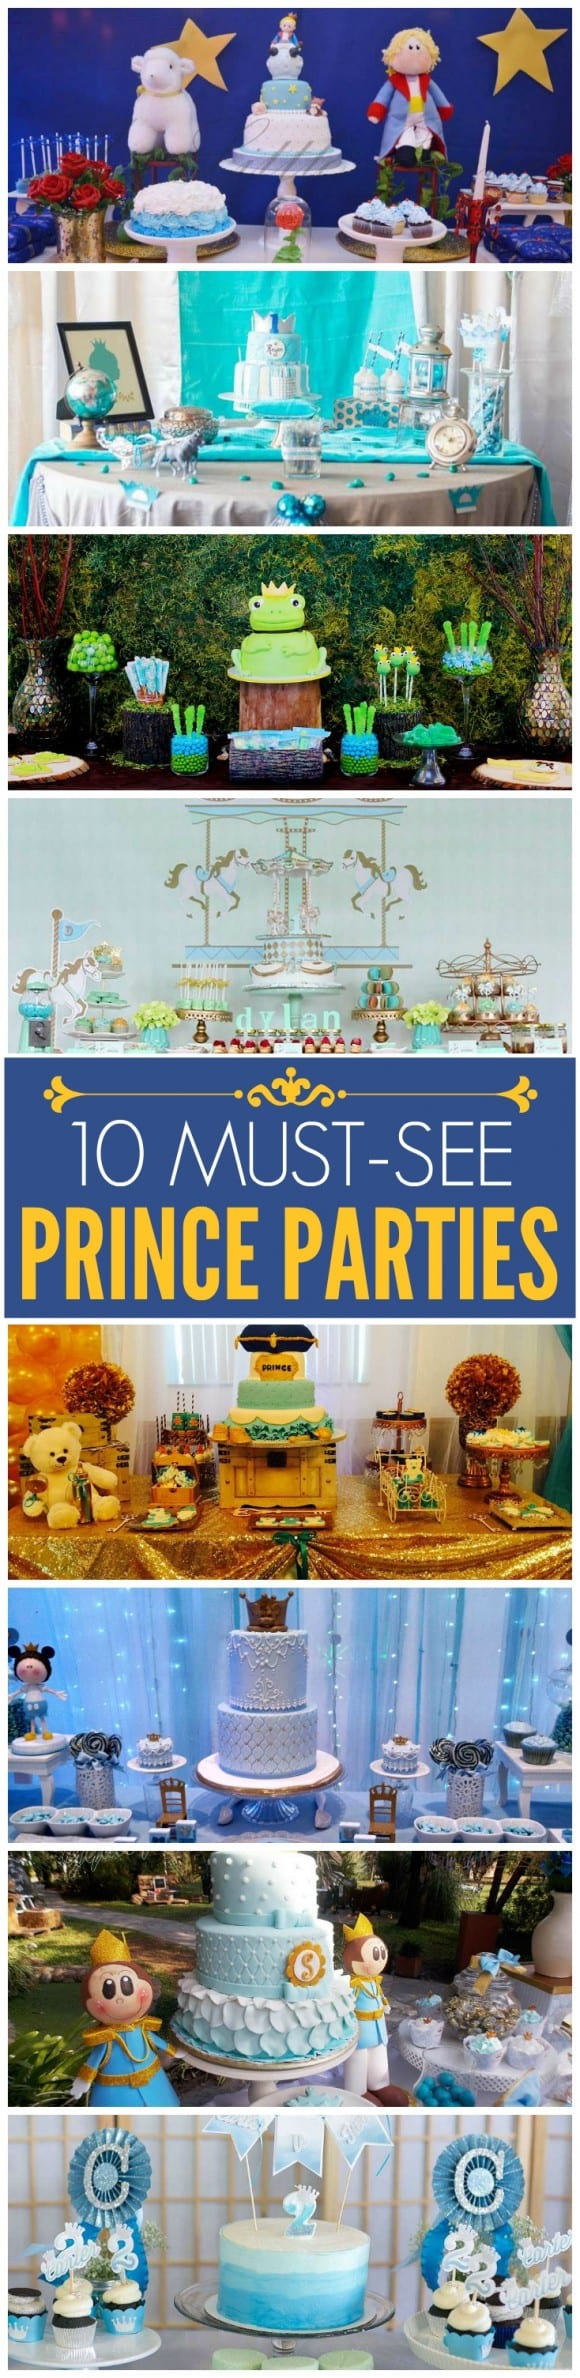 10 must see prince parties | CatchMyParty.com